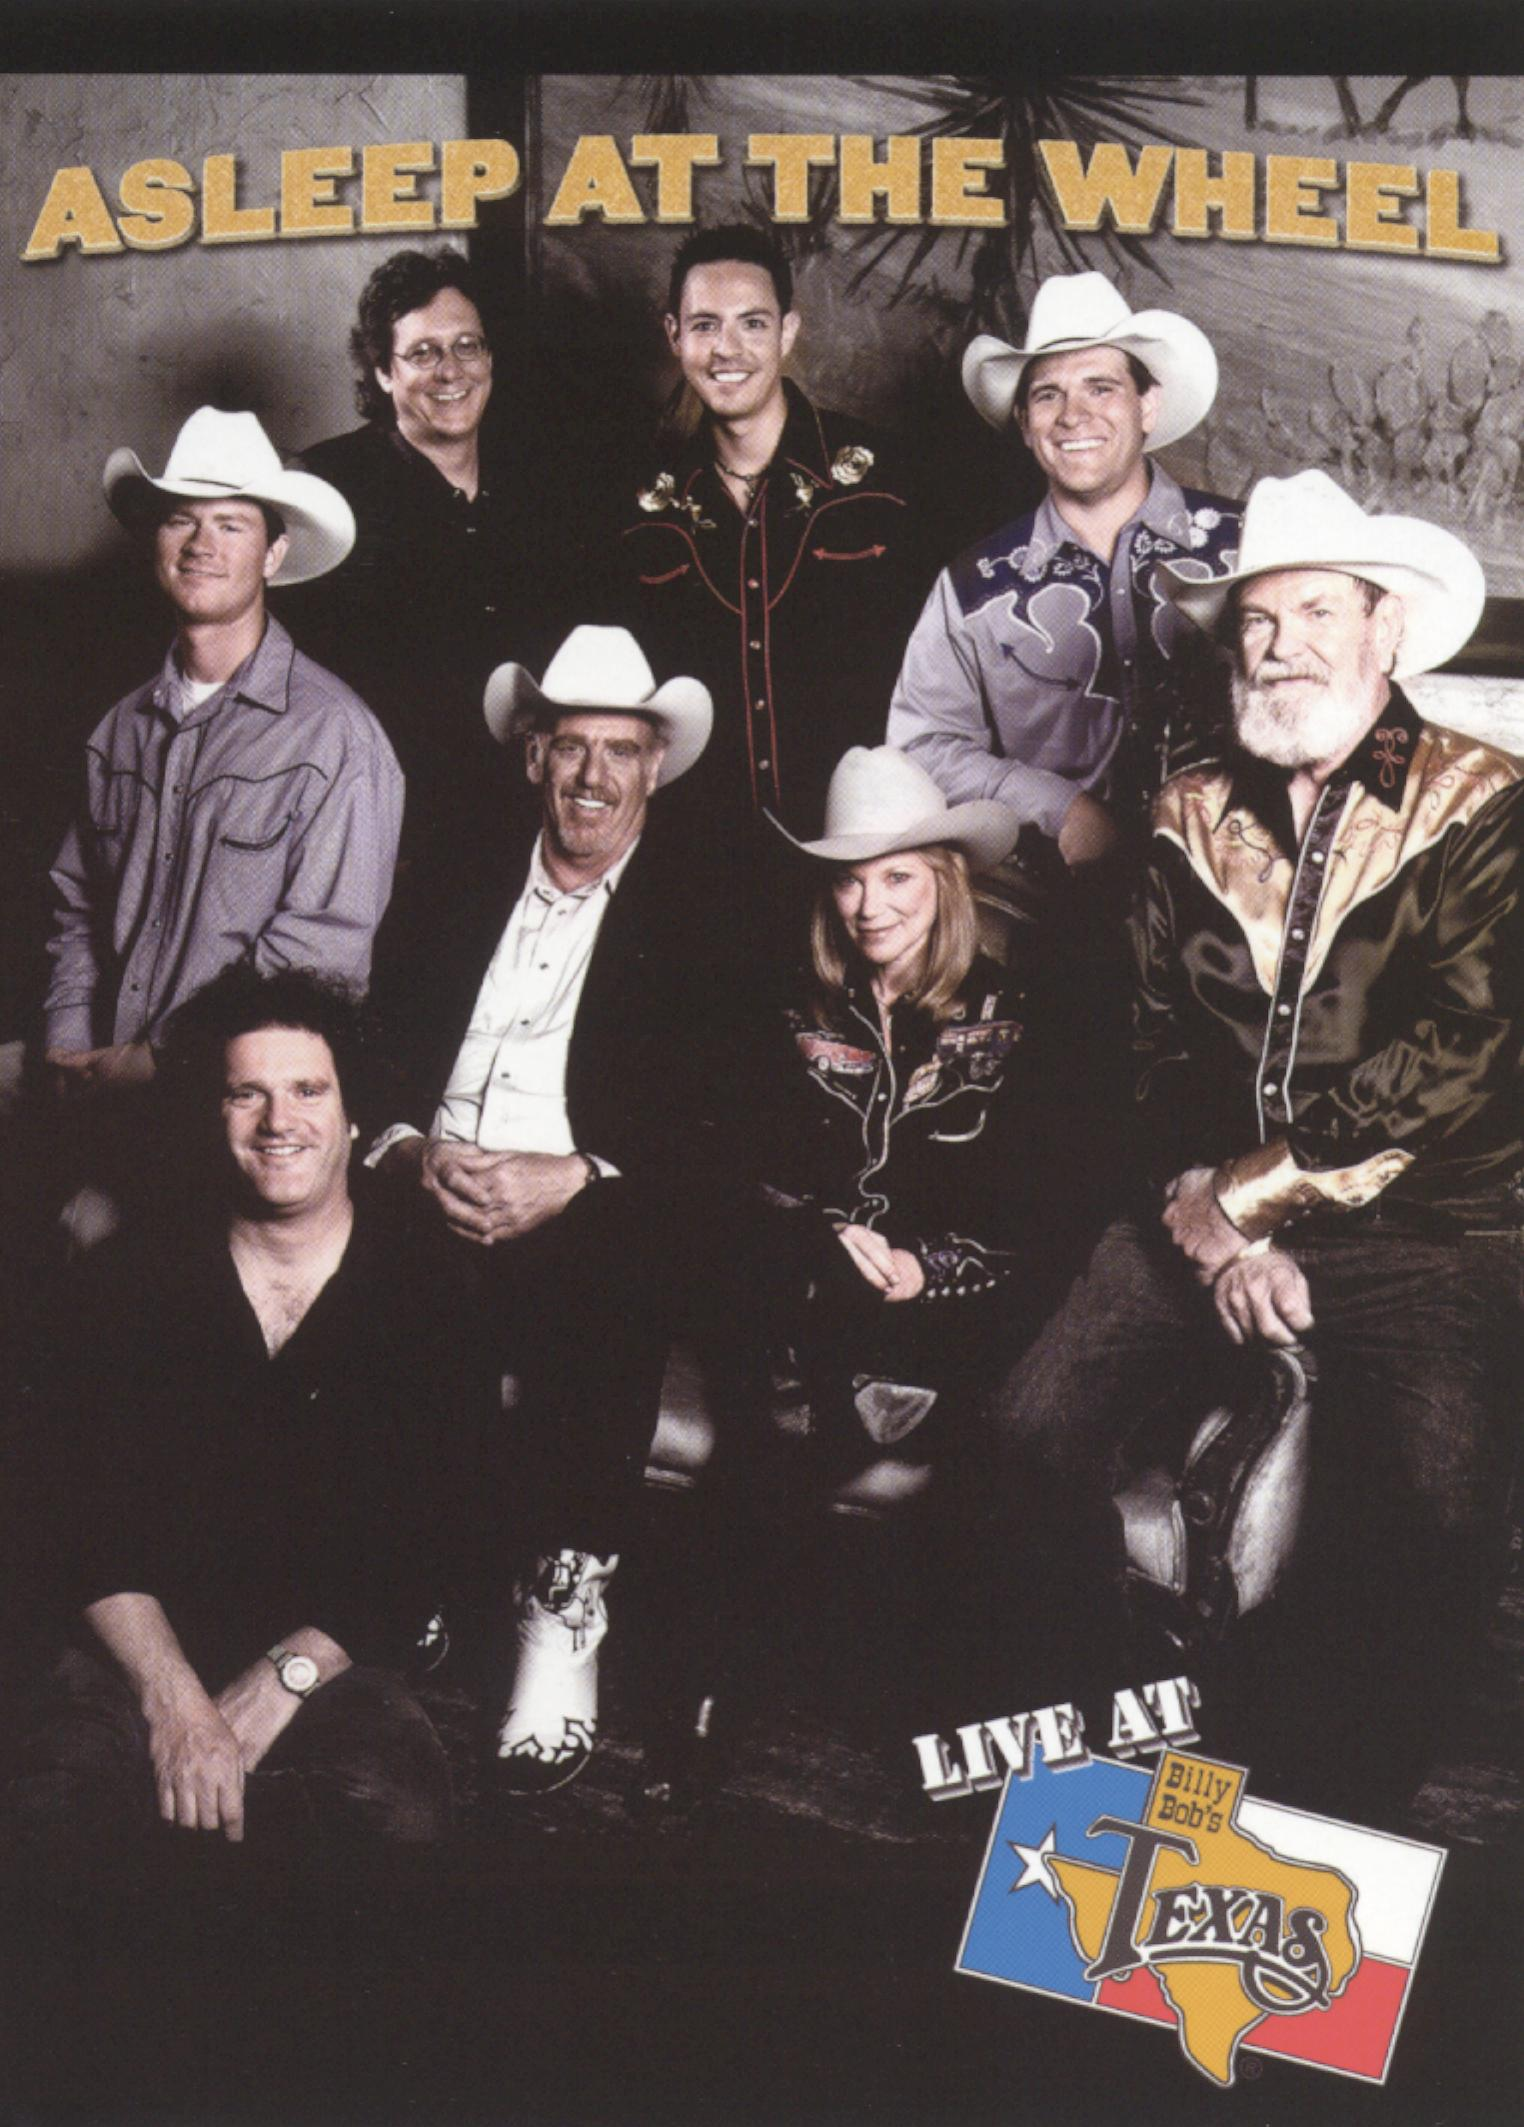 Asleep at the Wheel: Live at Billy Bob's Texas